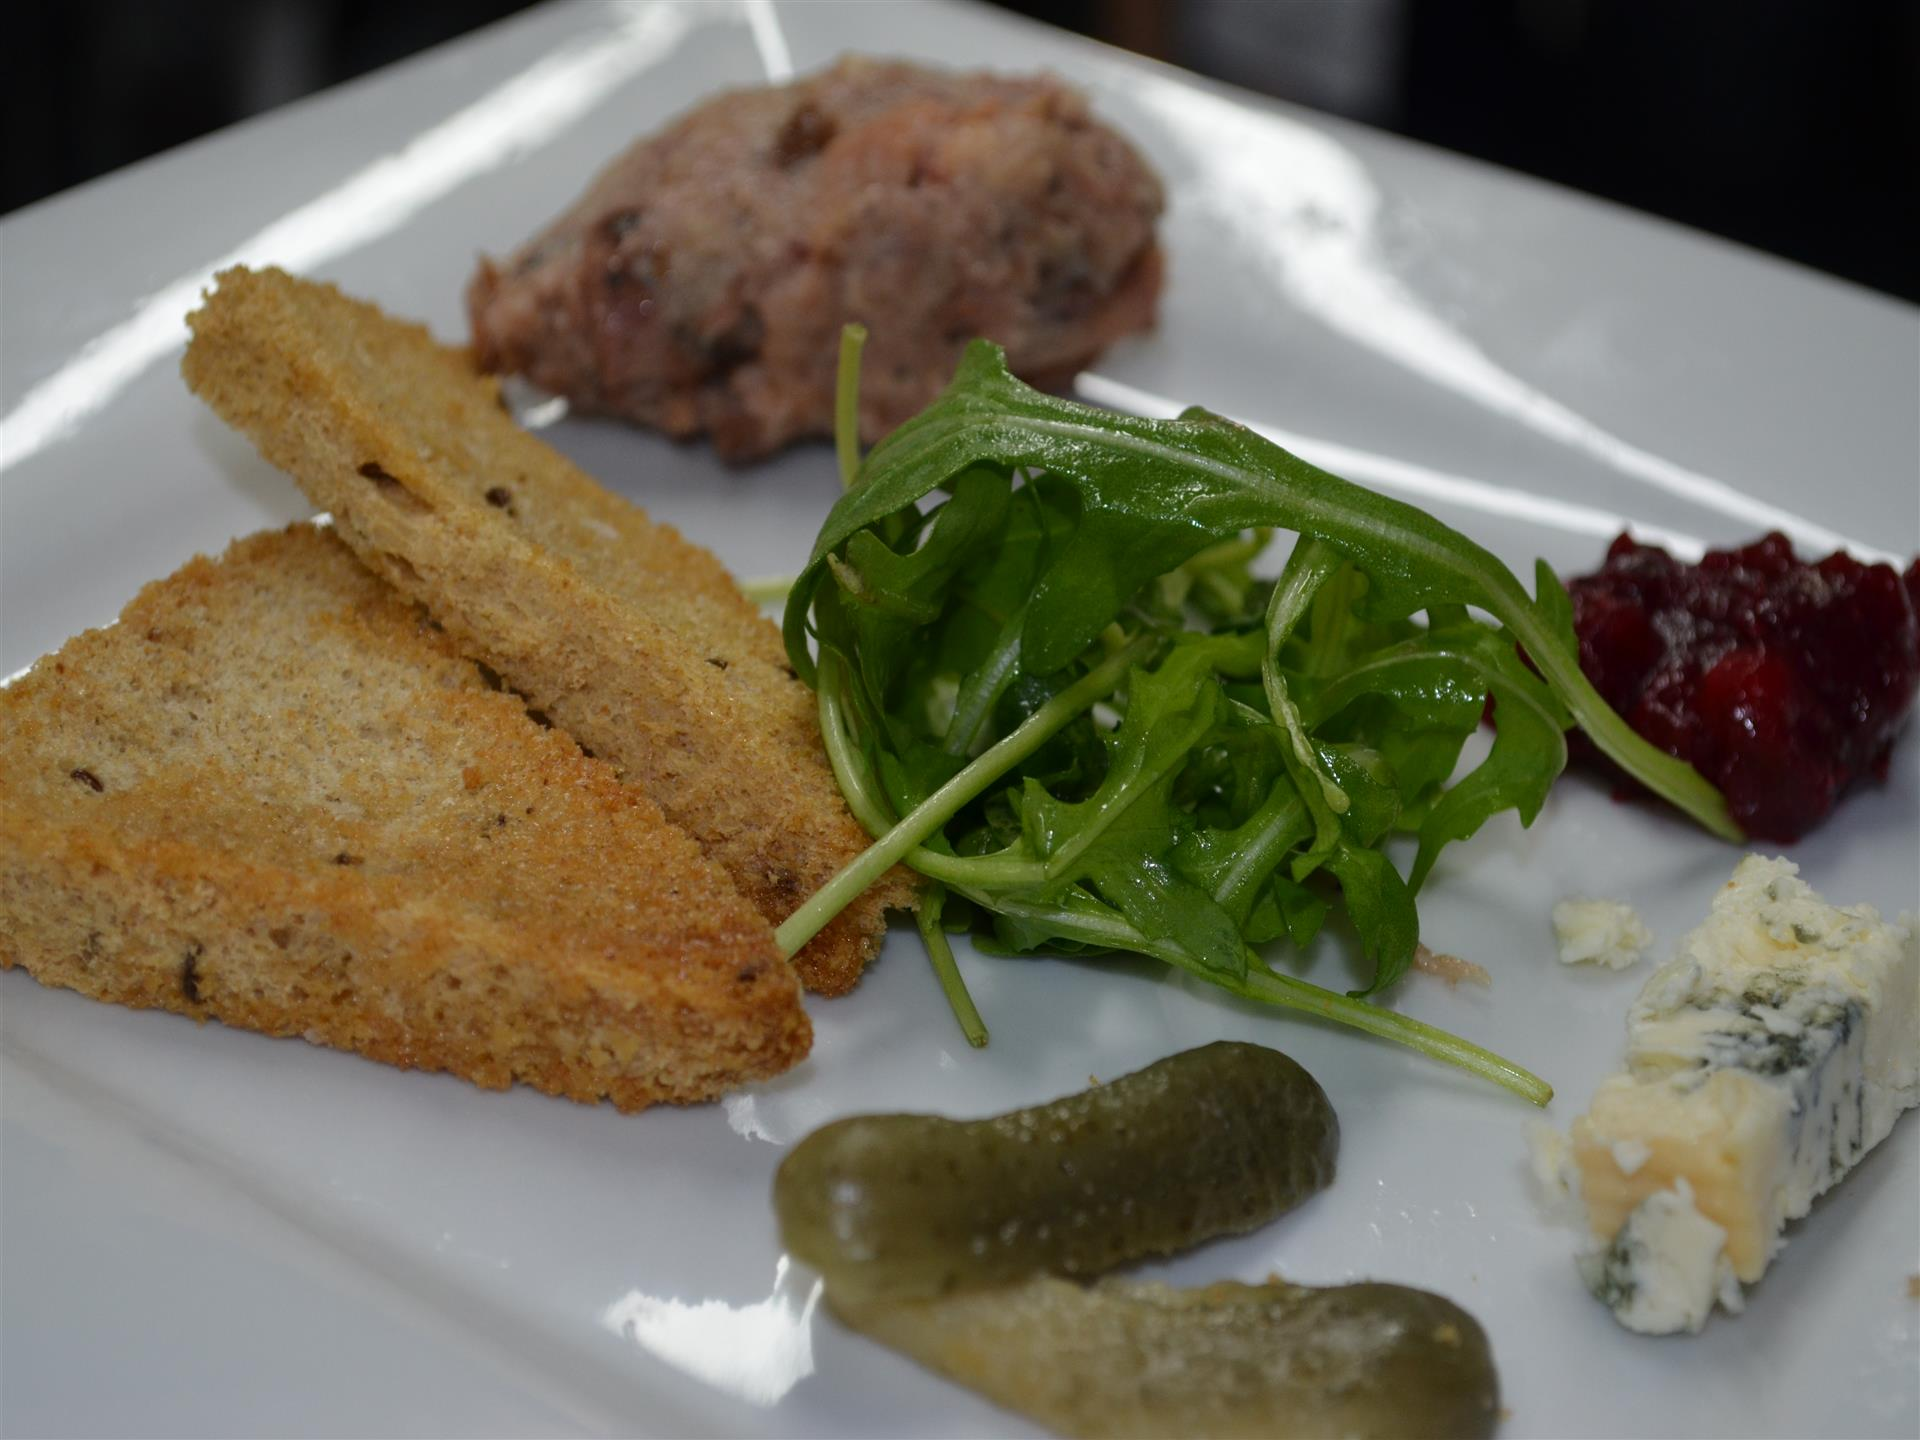 Fried dish served with arugula, blue cheese and pickles